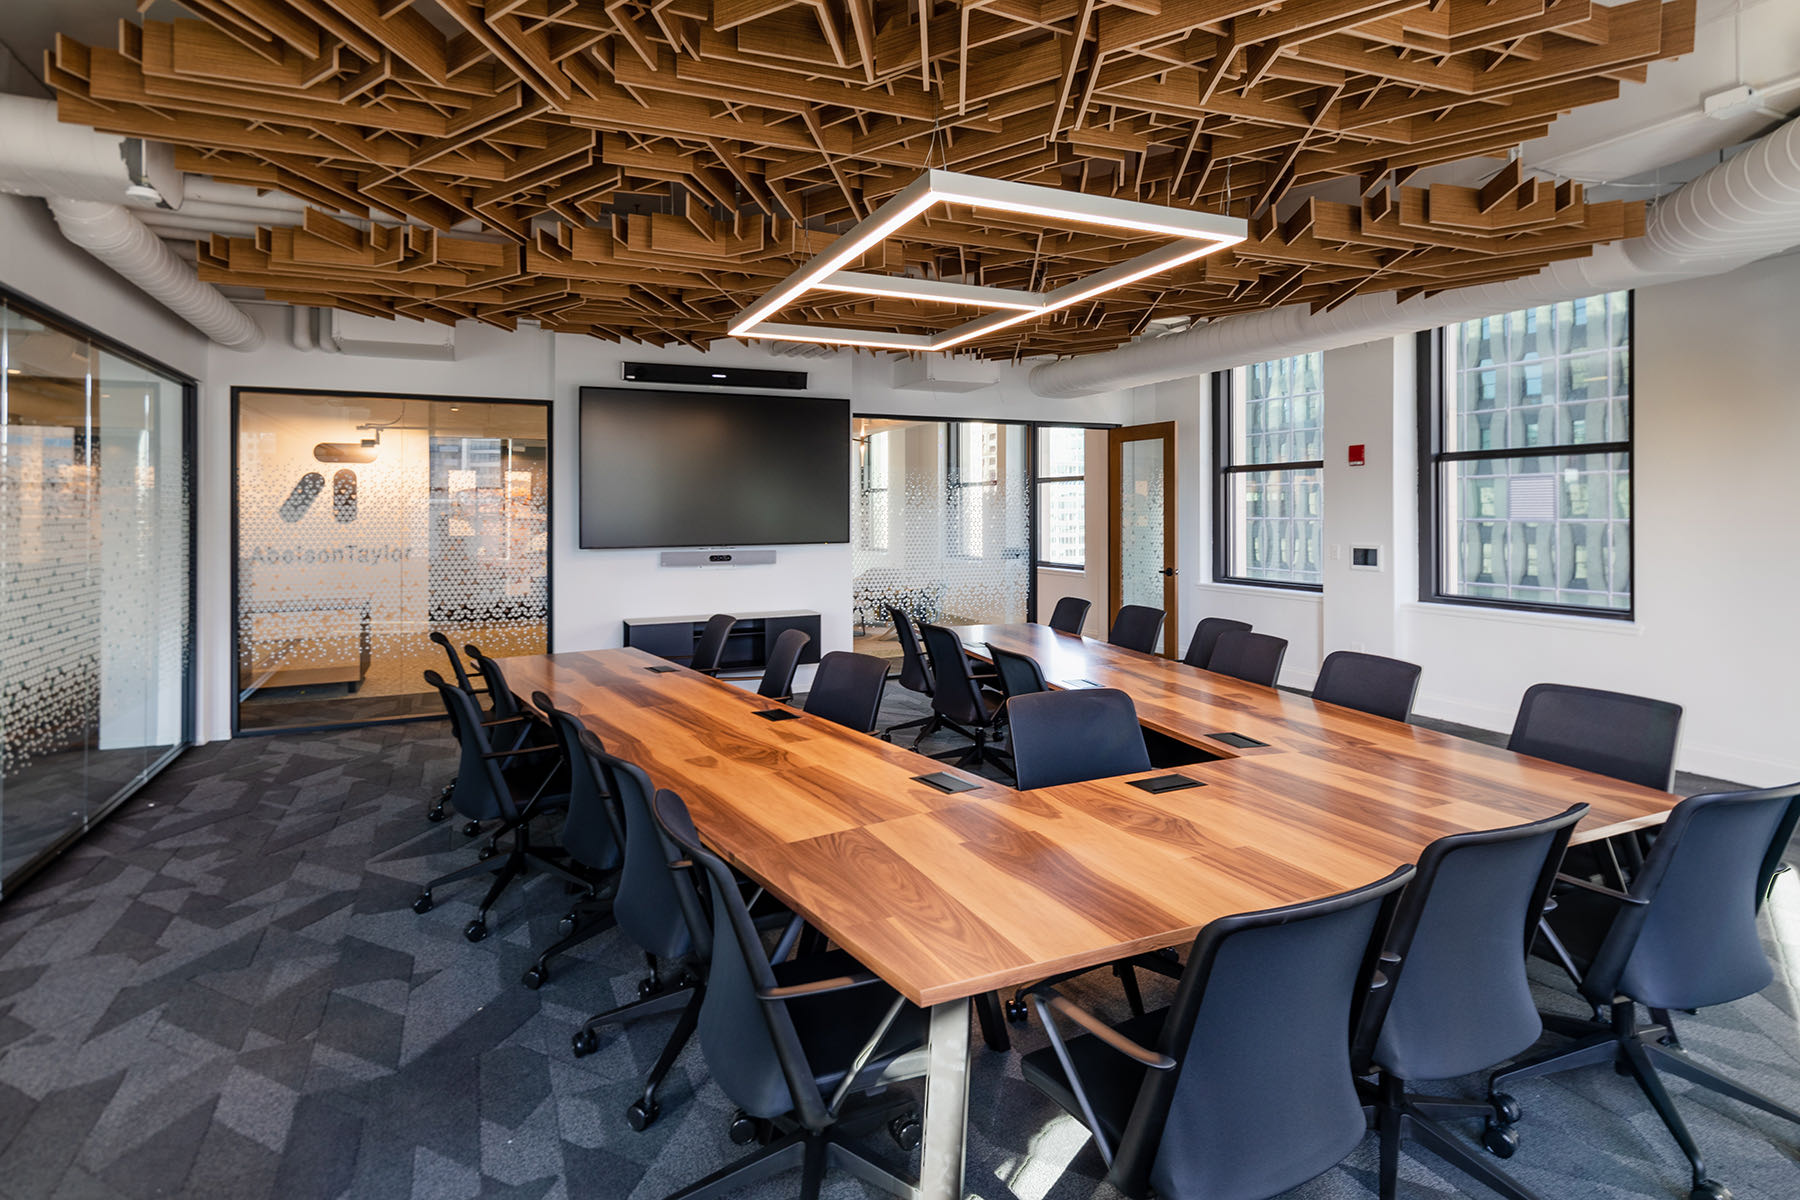 abelson-taylor-office-4